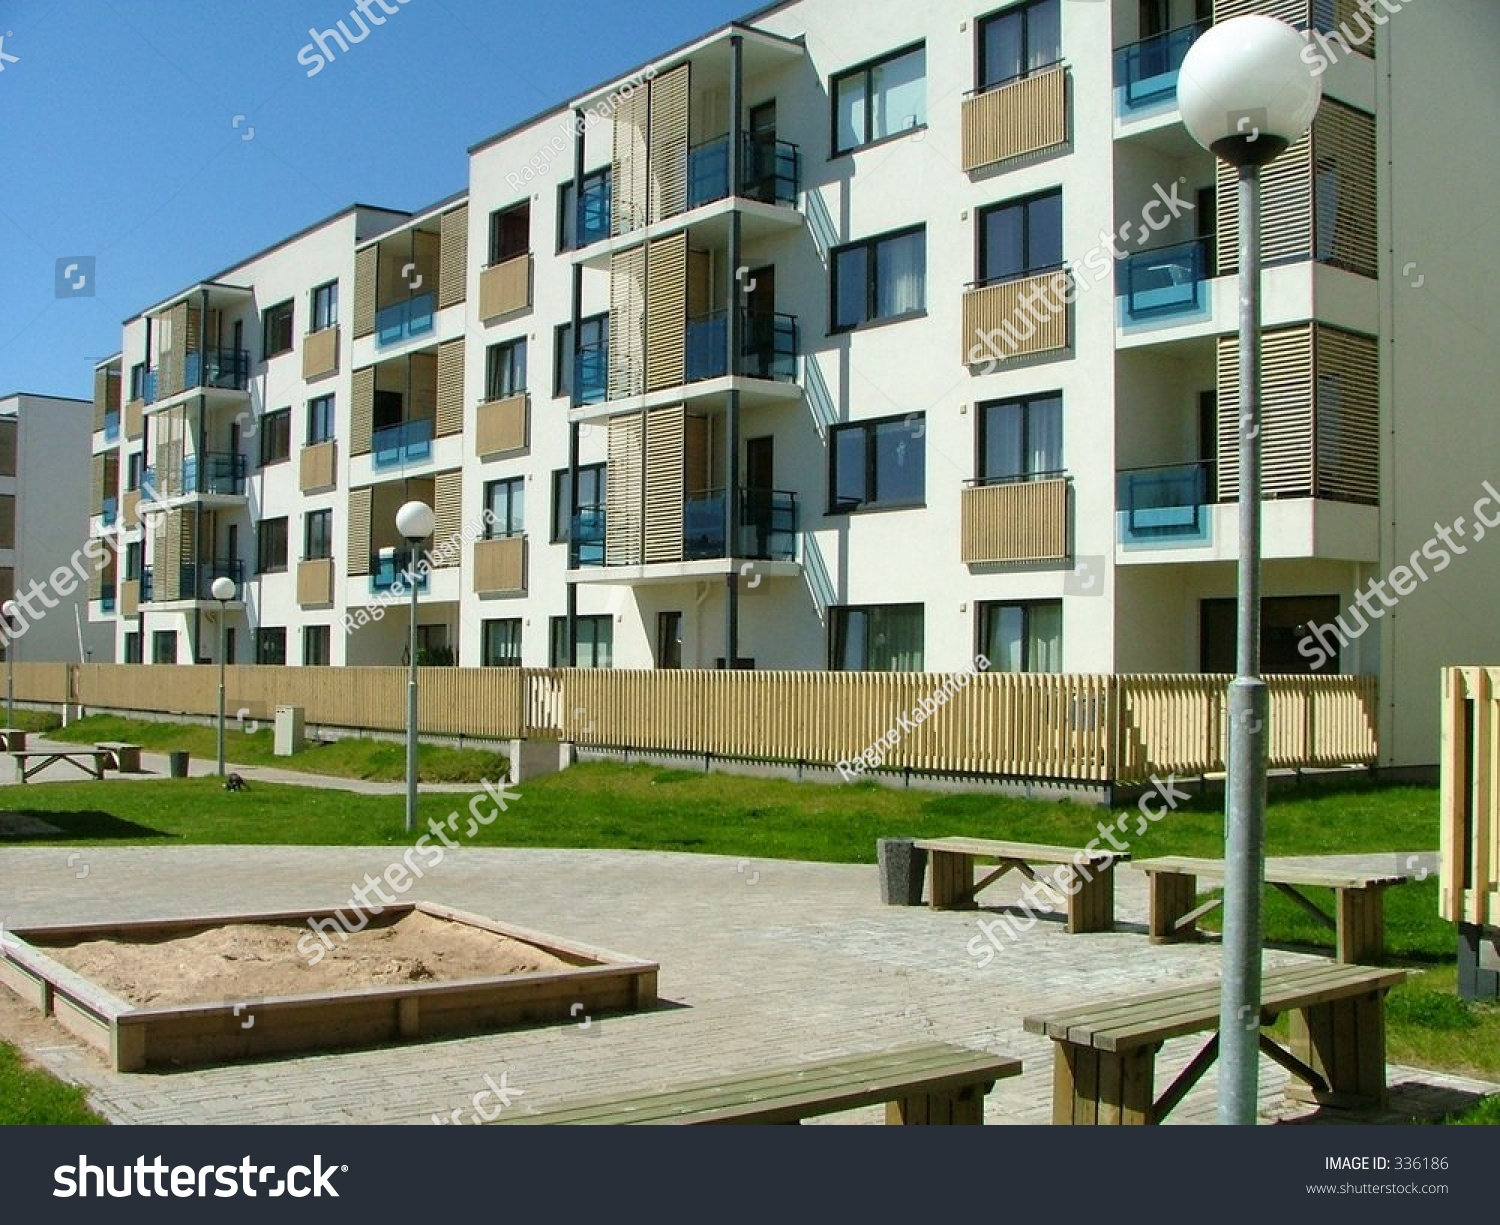 Apartment Houses Row Nice Looking Apartment Houses Stock Photo 336186  Shutterstock